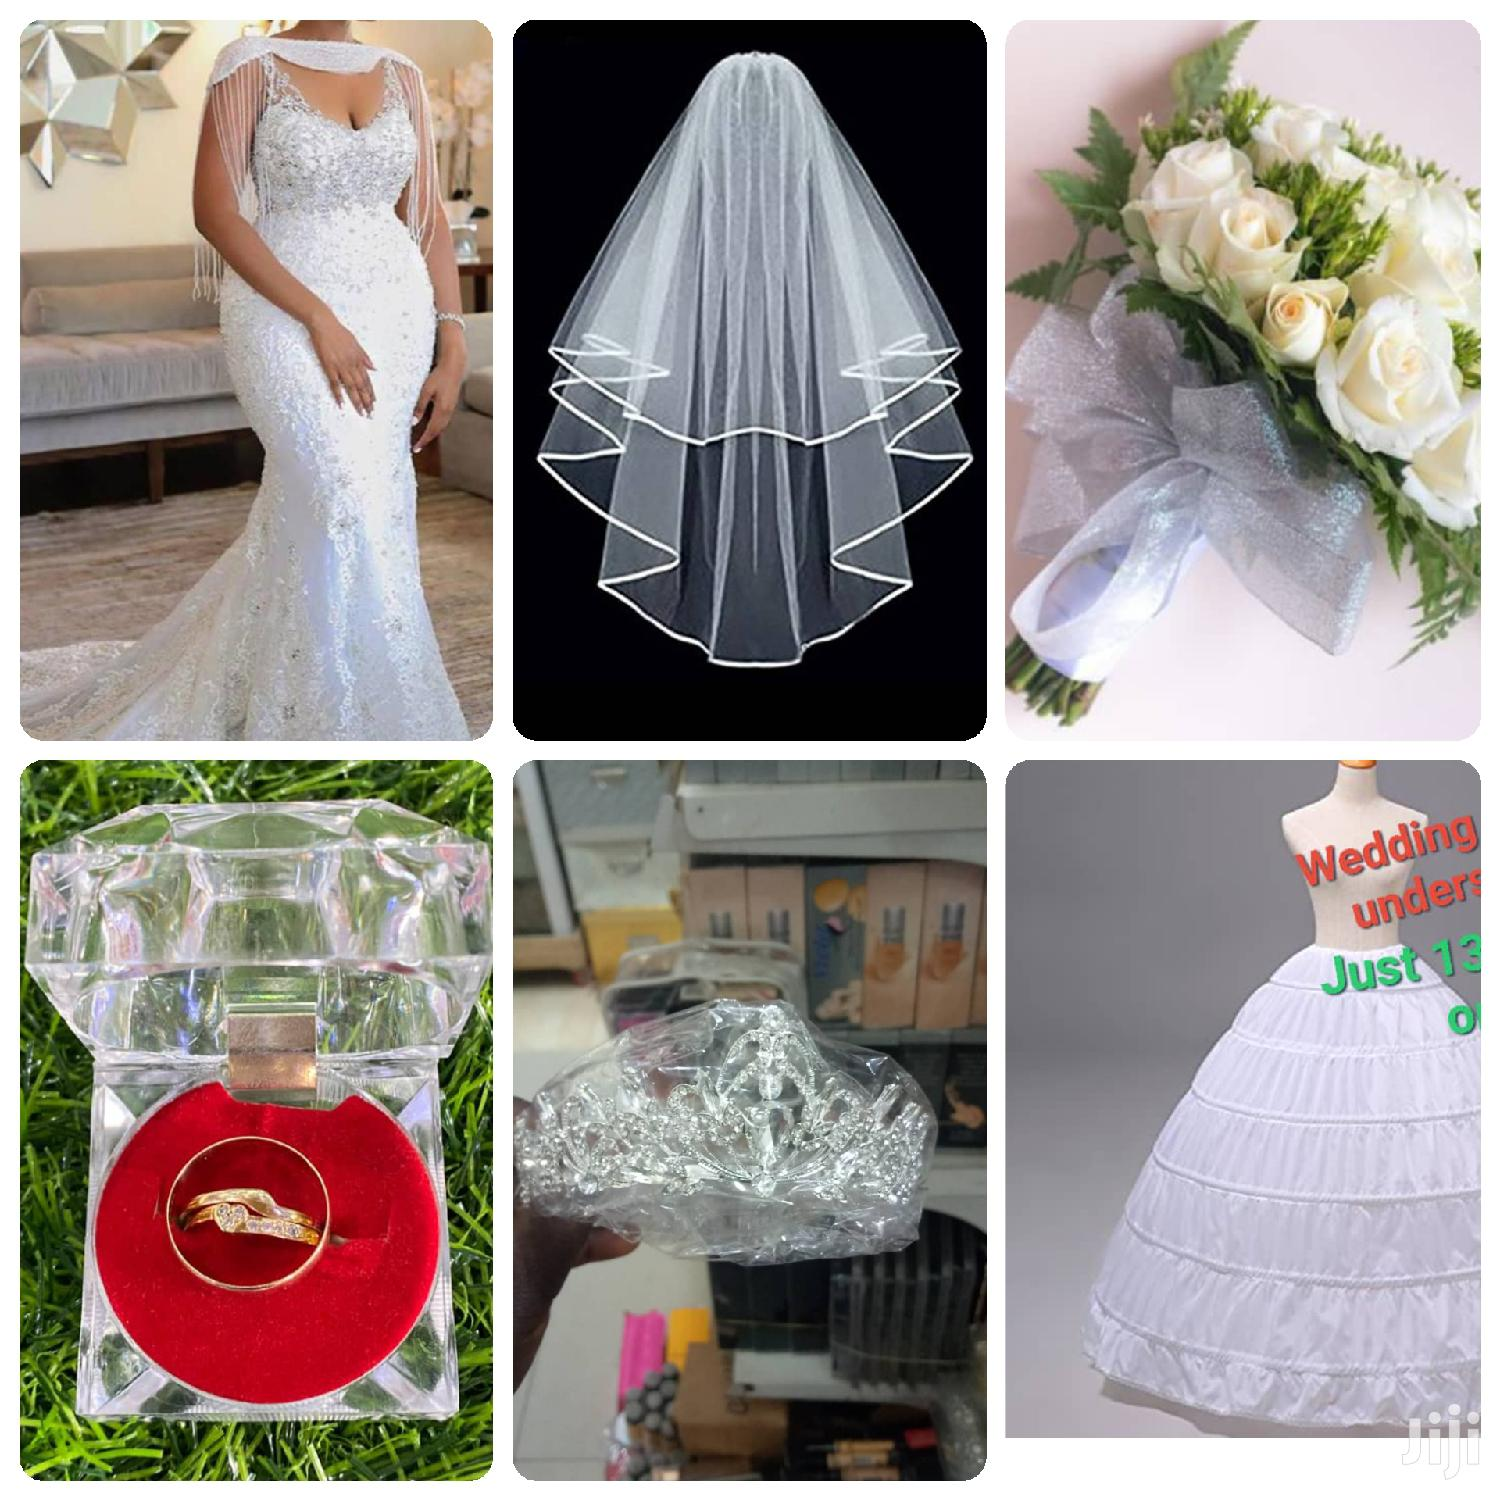 Gown, Bouquet,3 Set of Gold Dust Rings, Underskirt Etc.